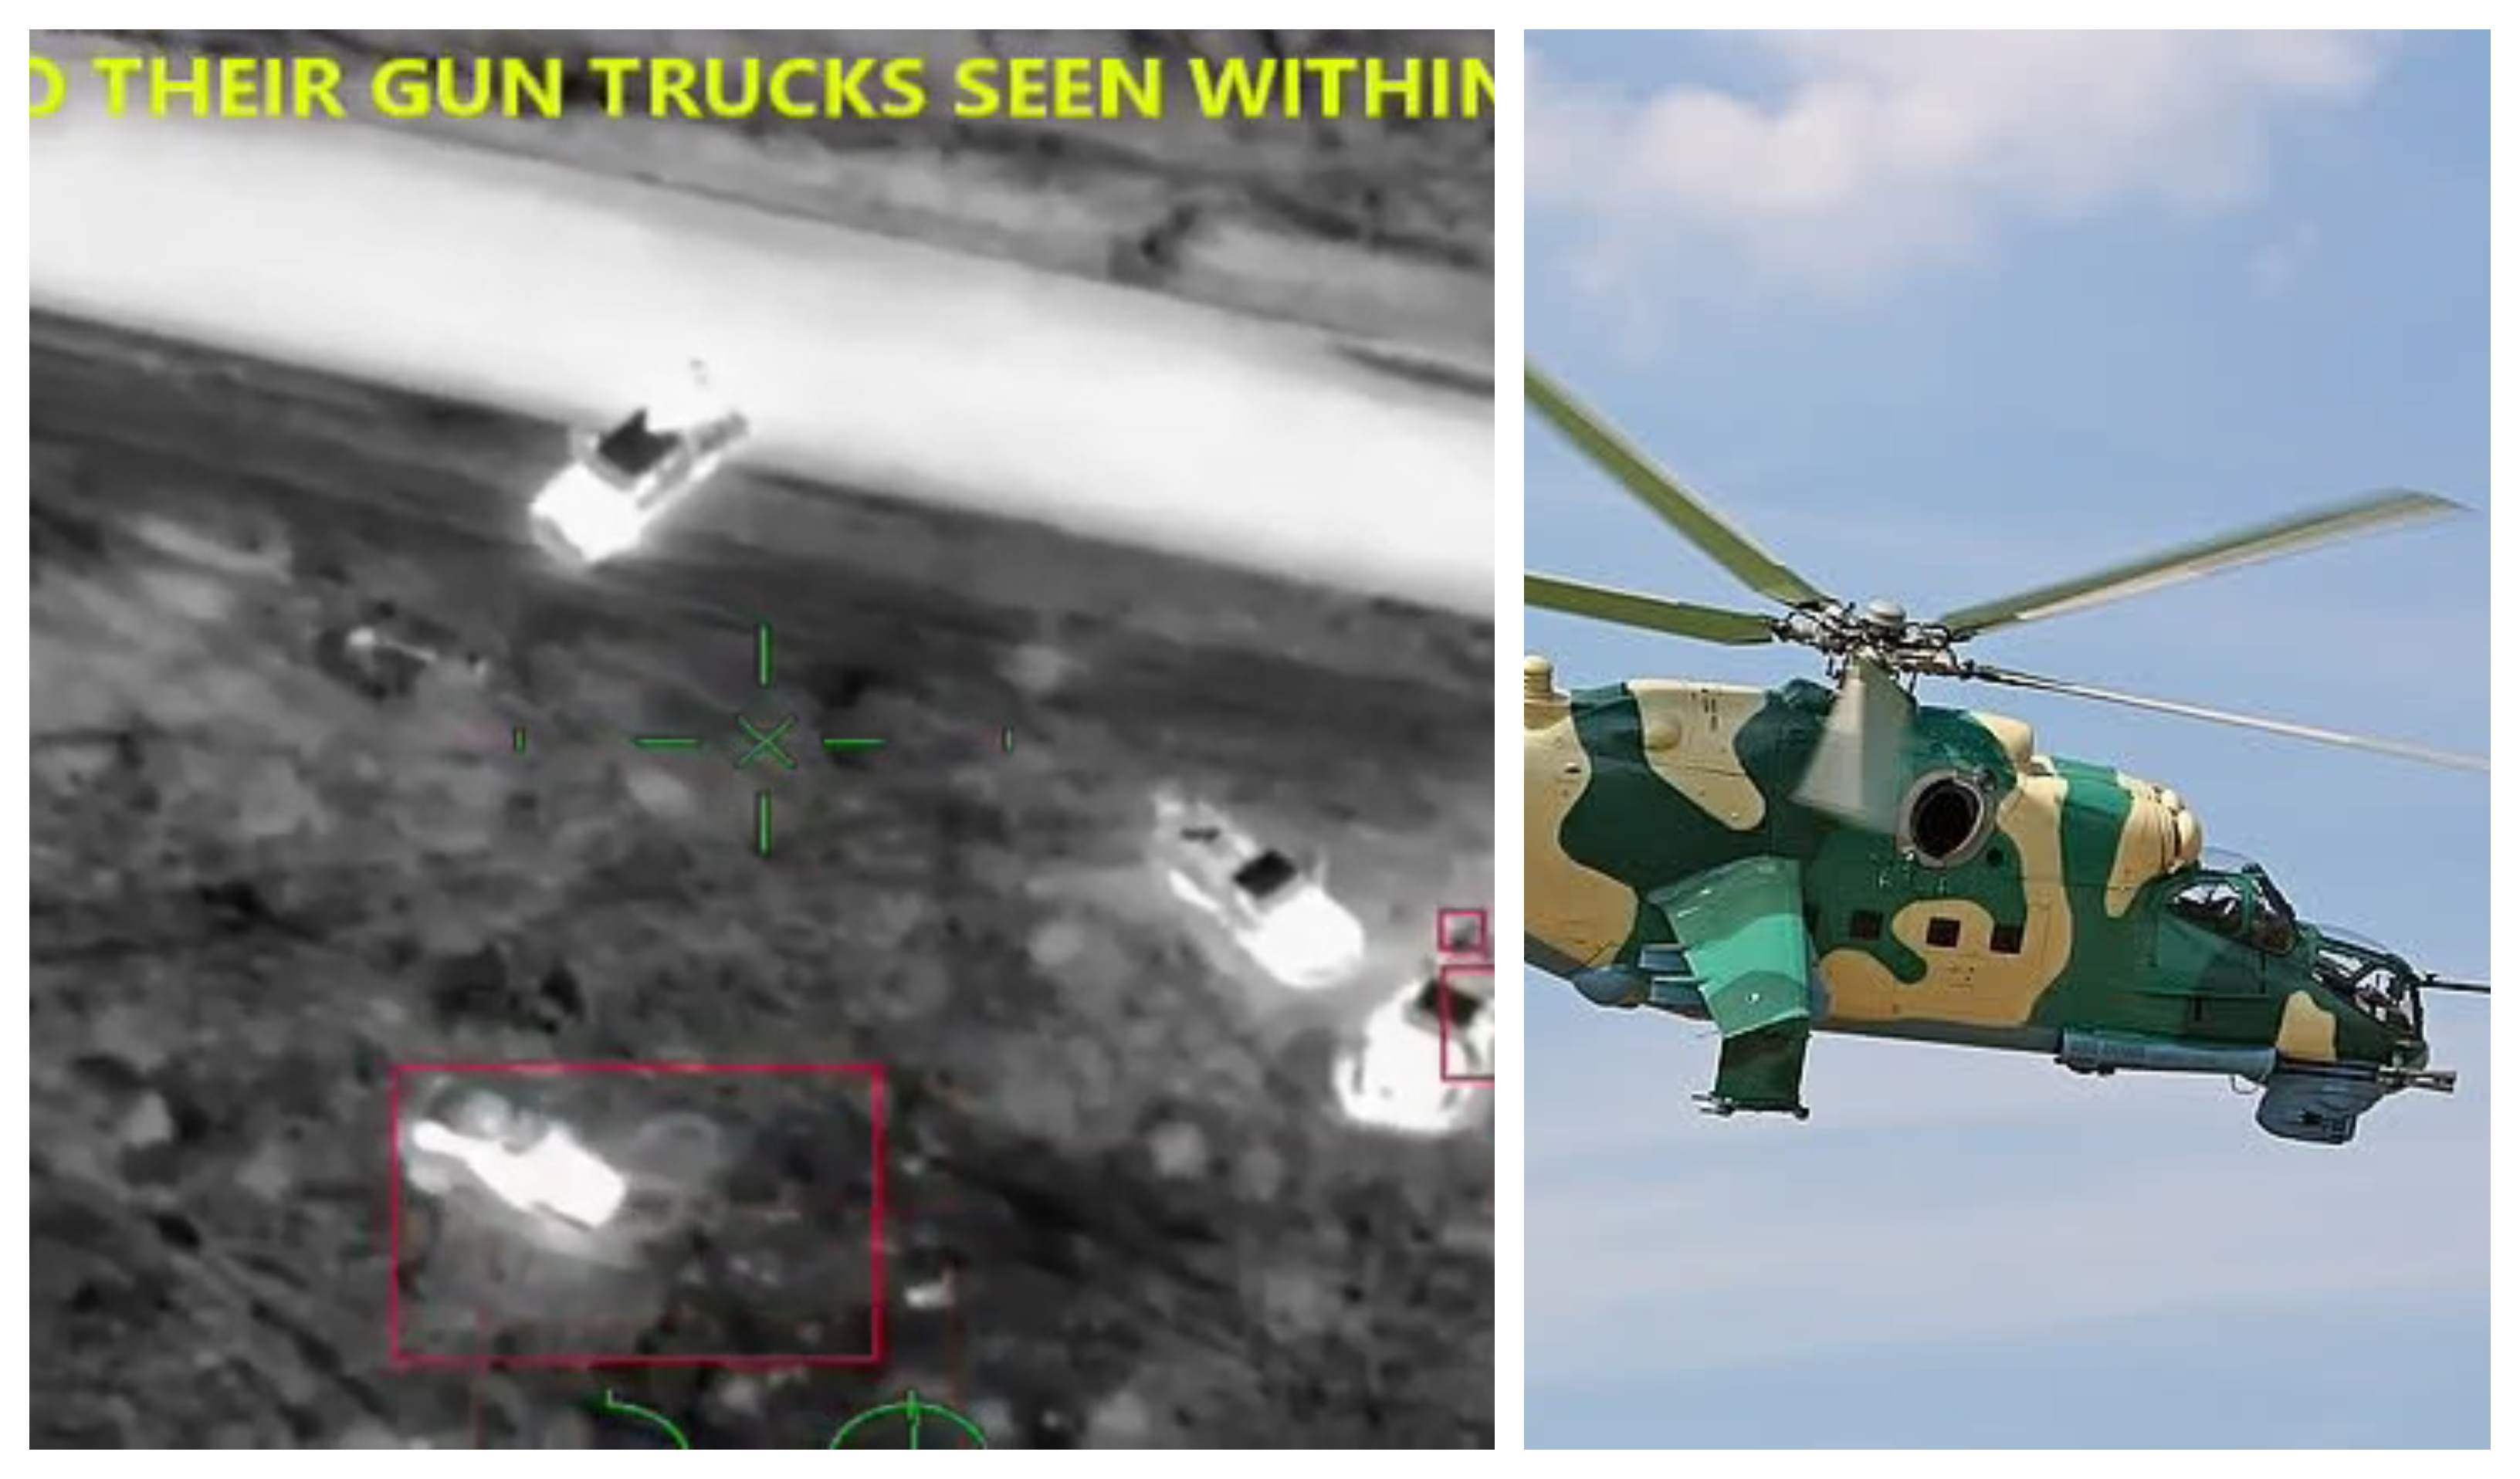 NAF Helicopter Destroys Boko Haram Terrorists Gun Trucks in Damasak [Video]